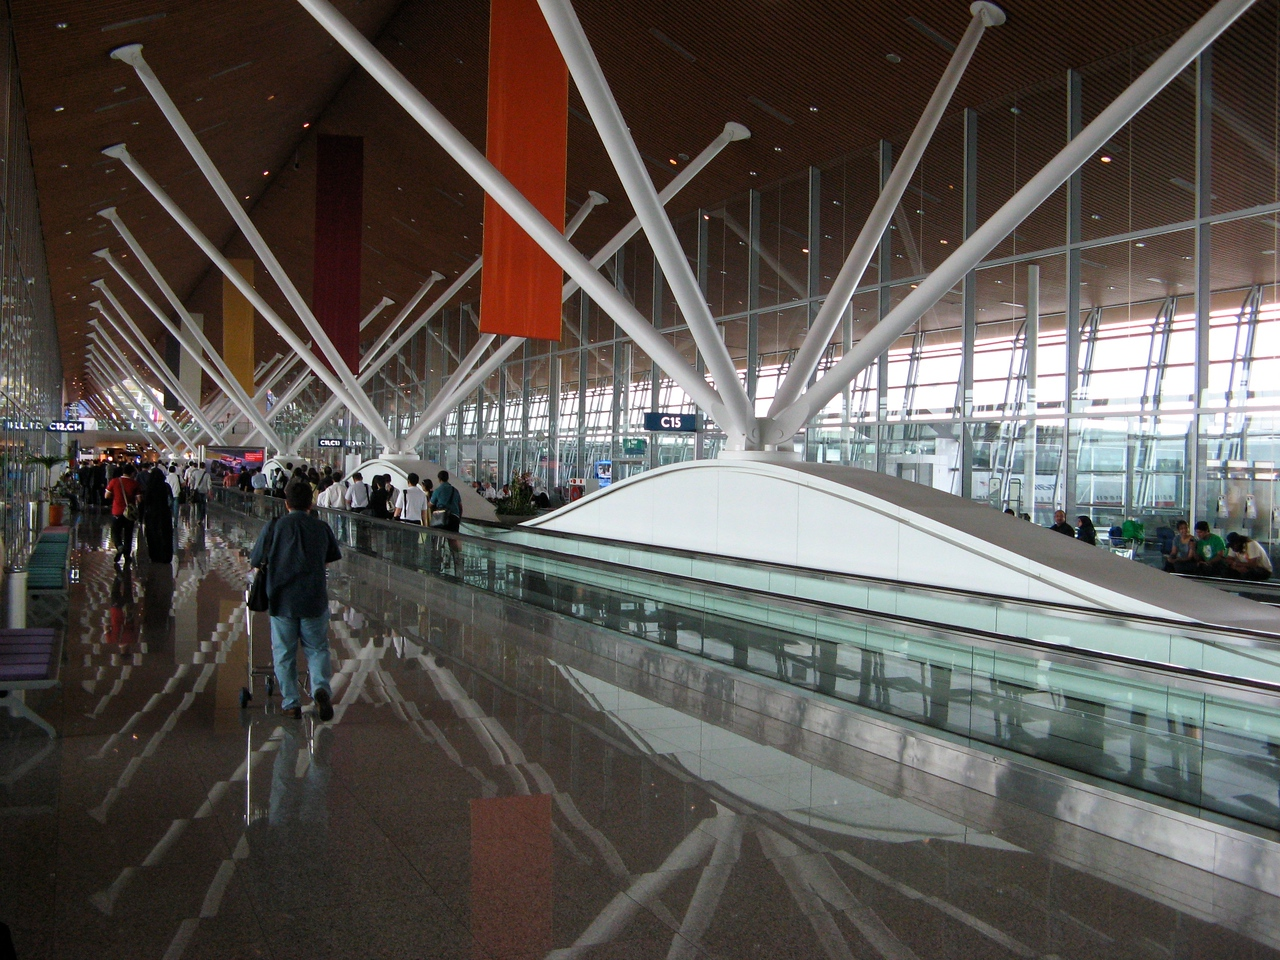 The KL airport sits about 35 minutes outside of the city itself.